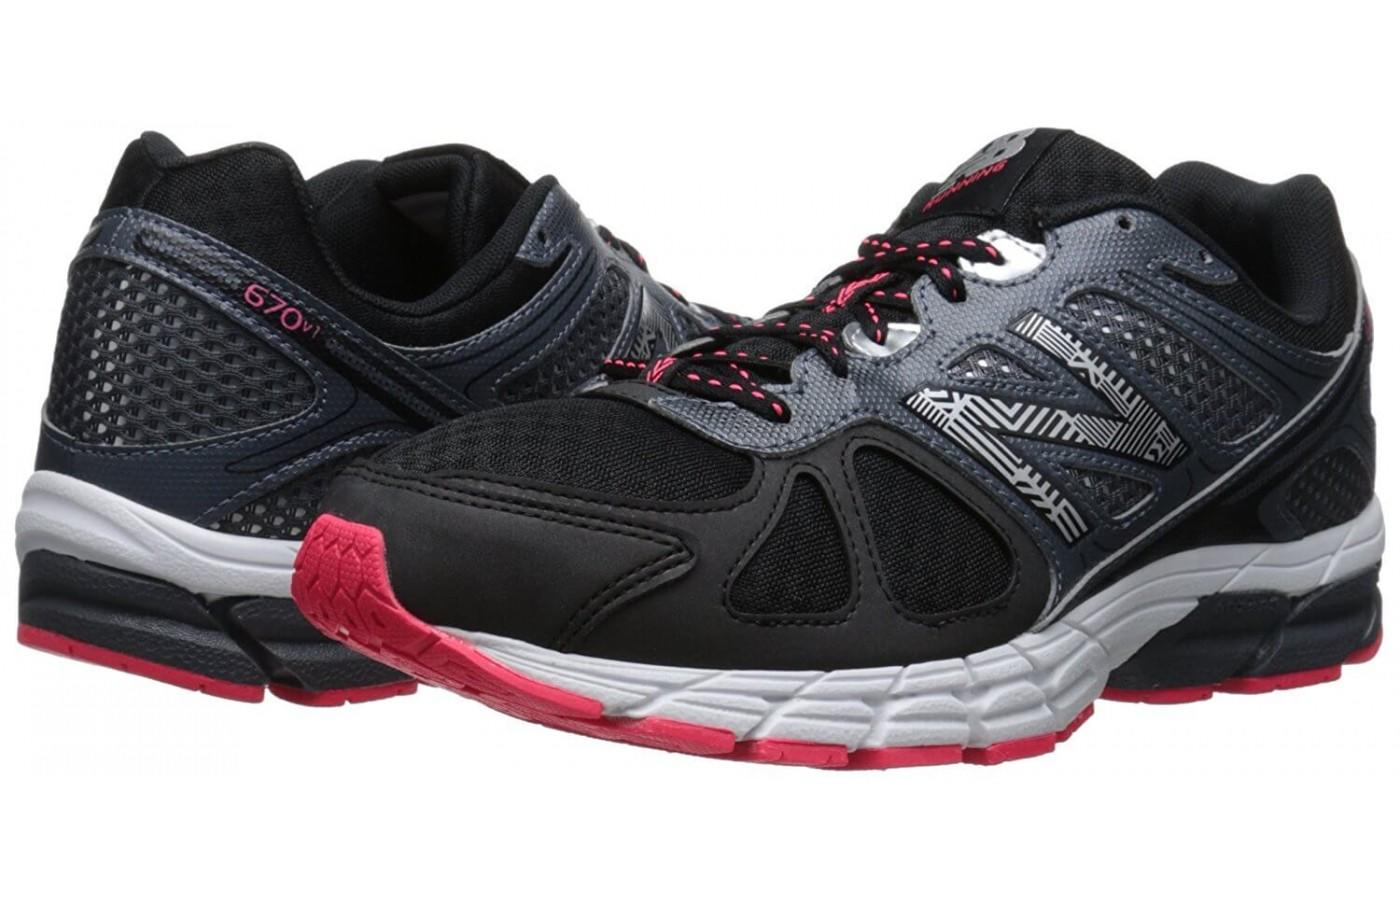 The 670v1 is listed at an affordable price